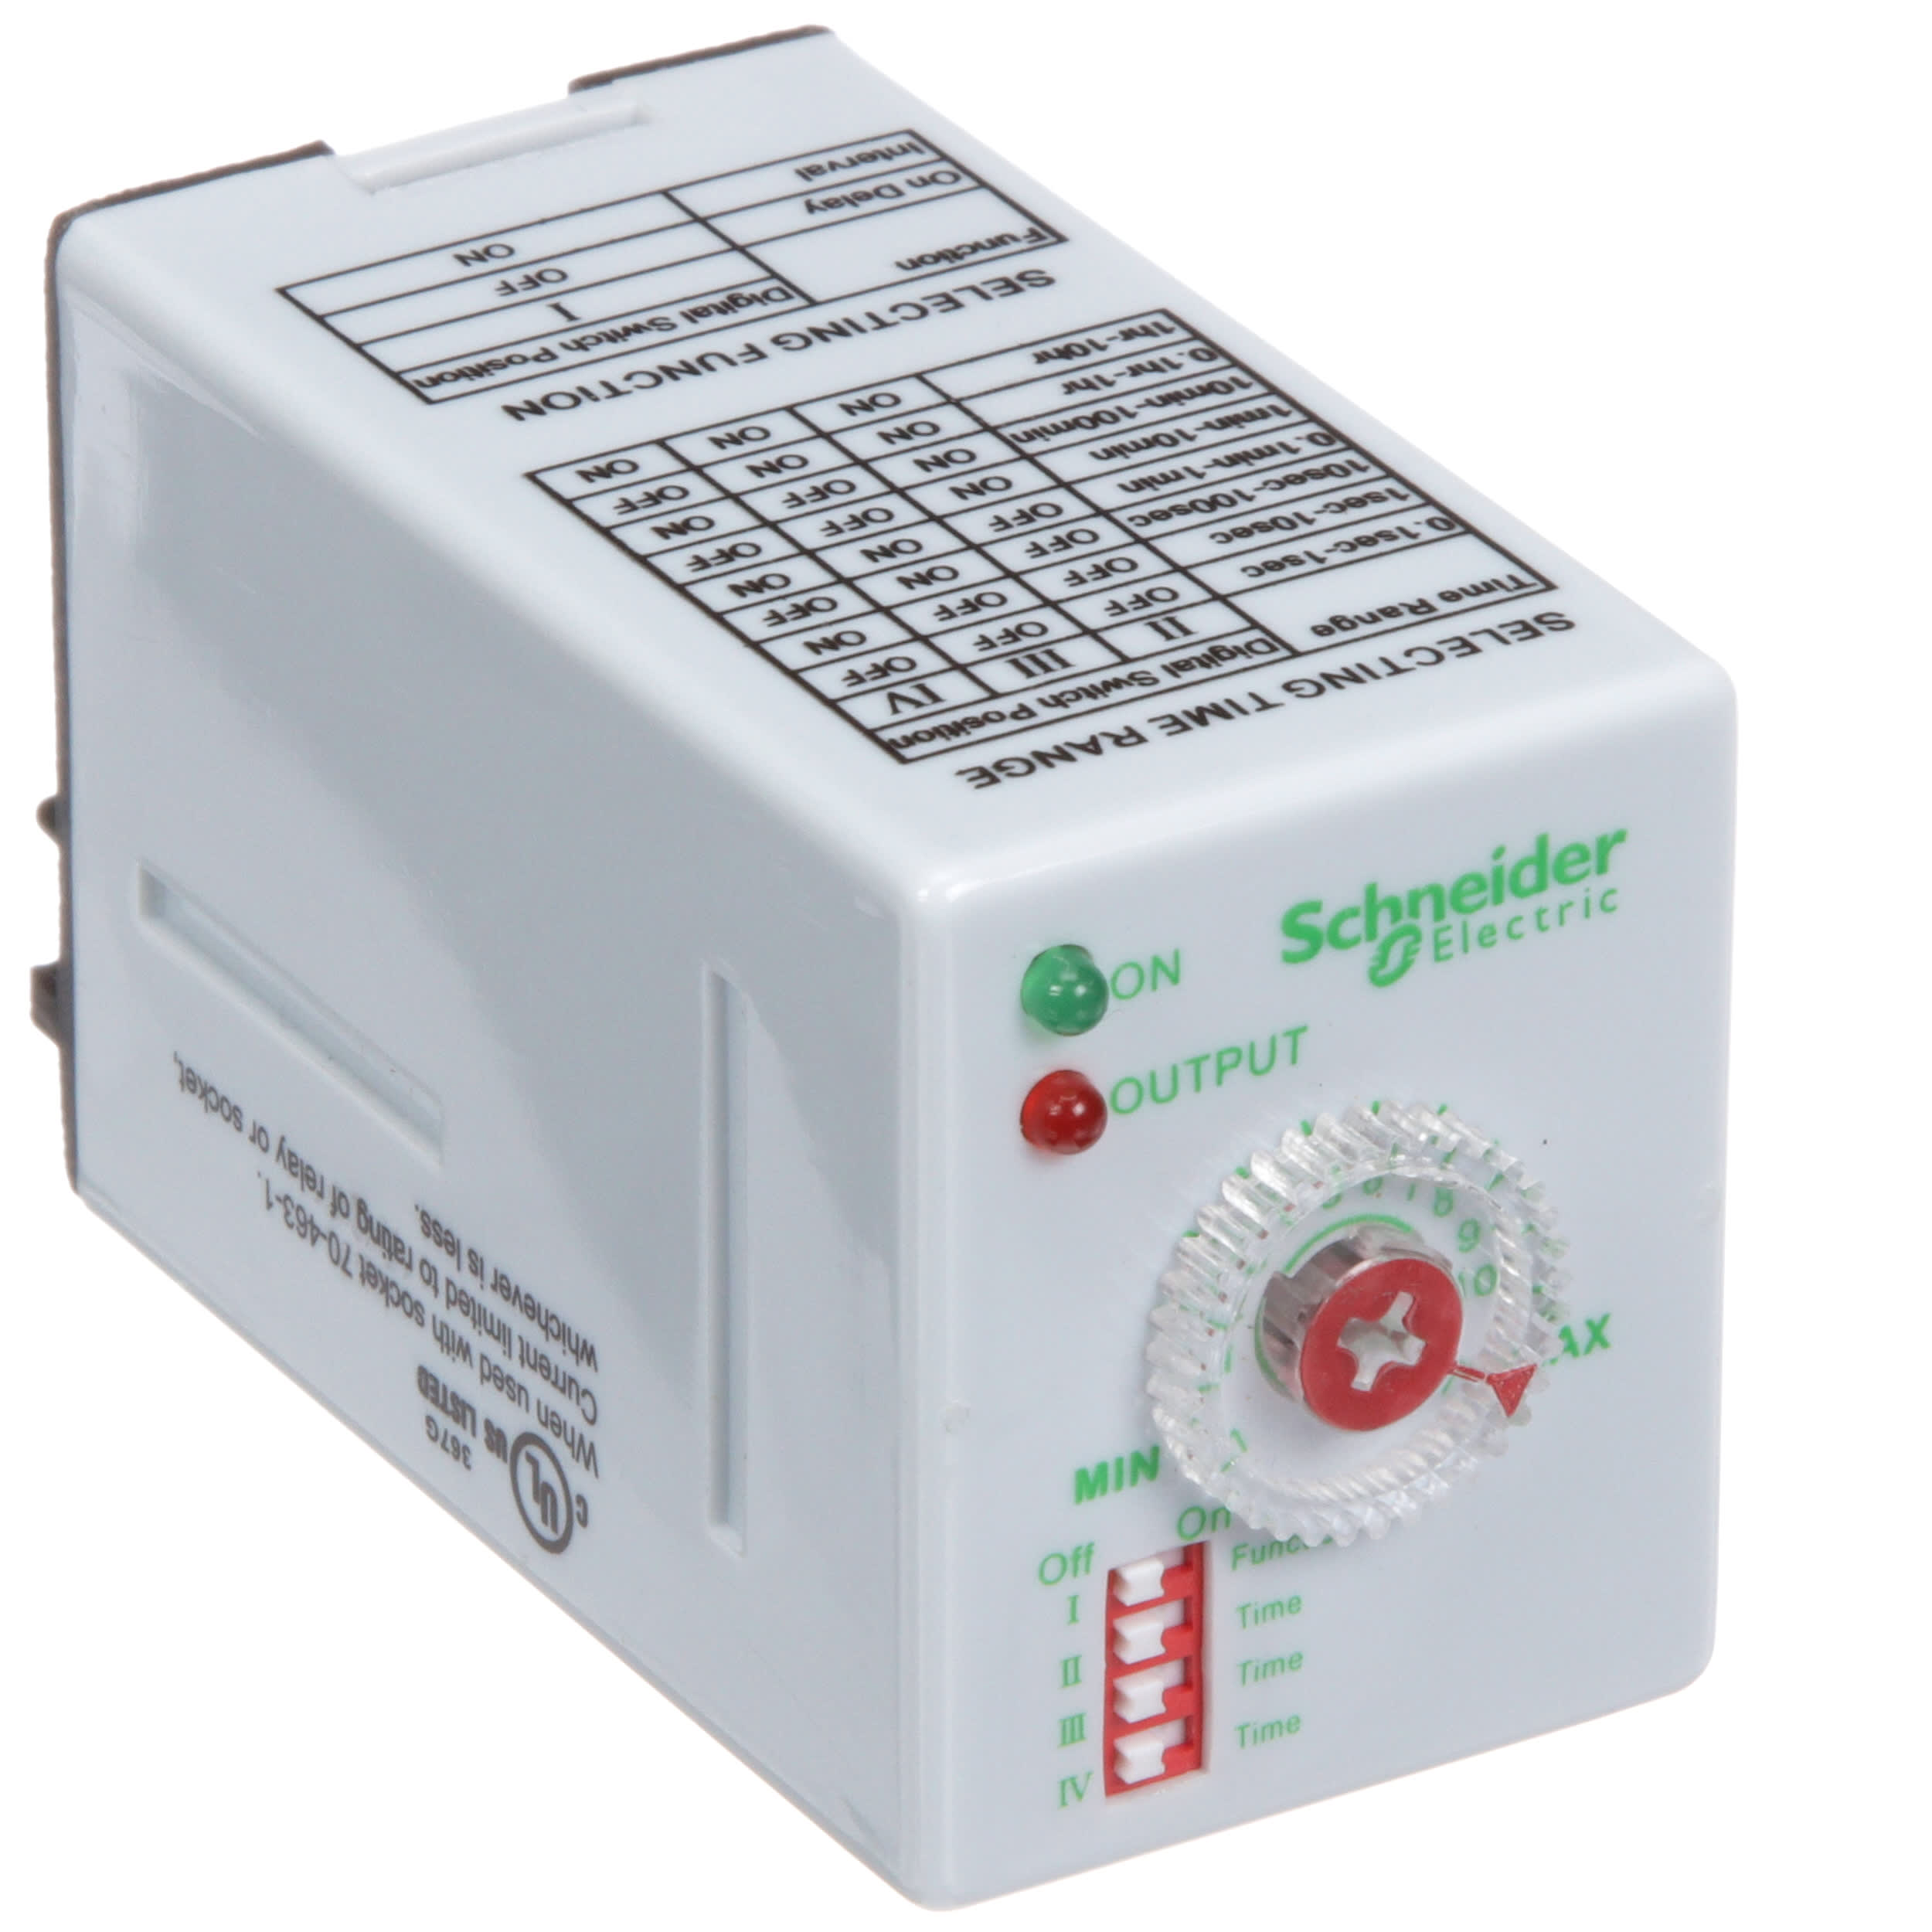 Schneider Electric Legacy Relays Tdrsoxb 120v Relay E Mech Vdc Dip Reed All Electronics Corp Timing On Delay Dpdt Cur Rtg 12a Ctrl V 120ac Dc Blade 8 Pin Allied